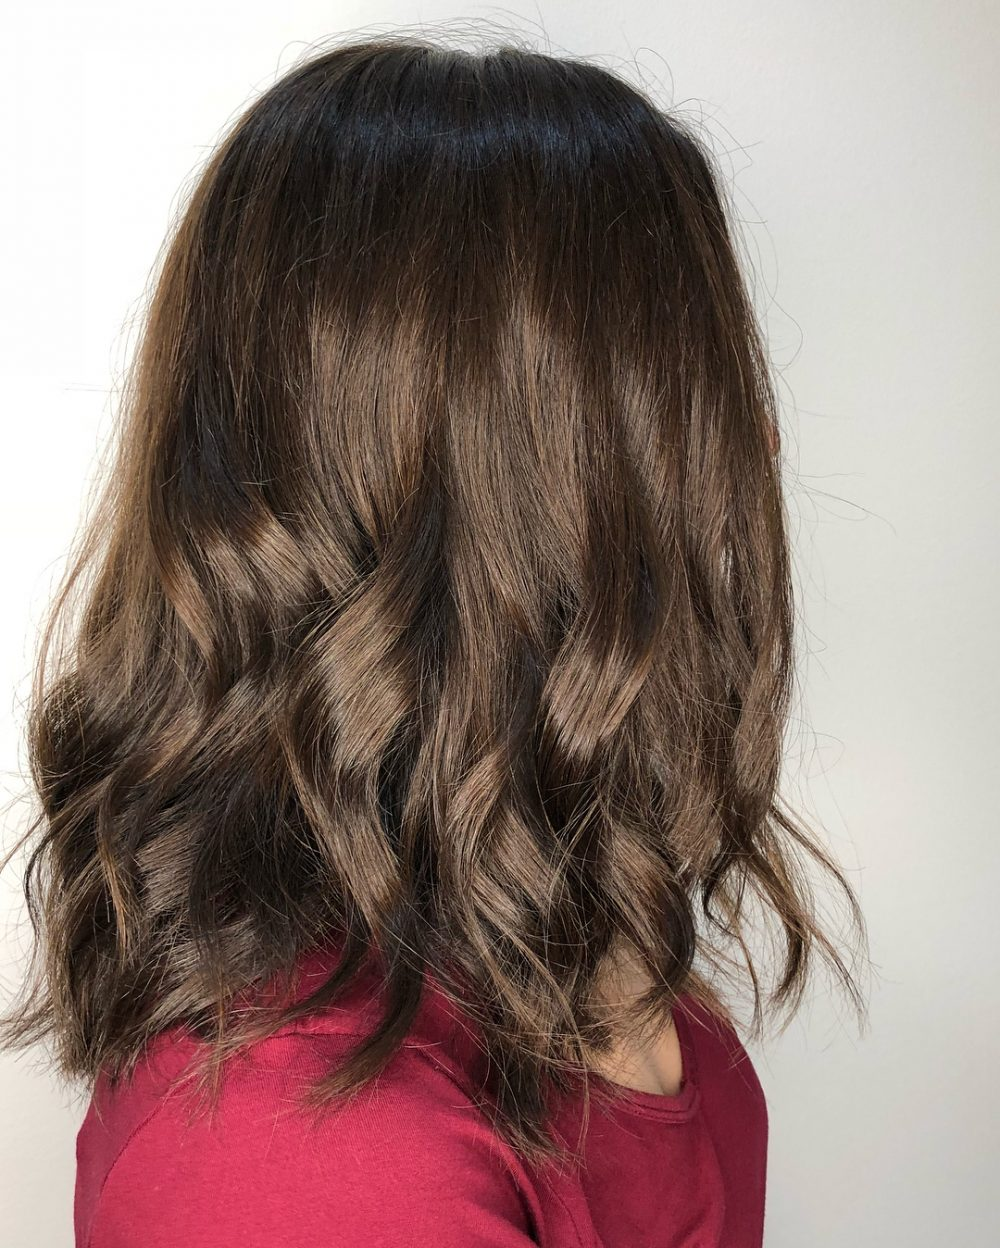 A superb chestnut brown colored bob with textured layers